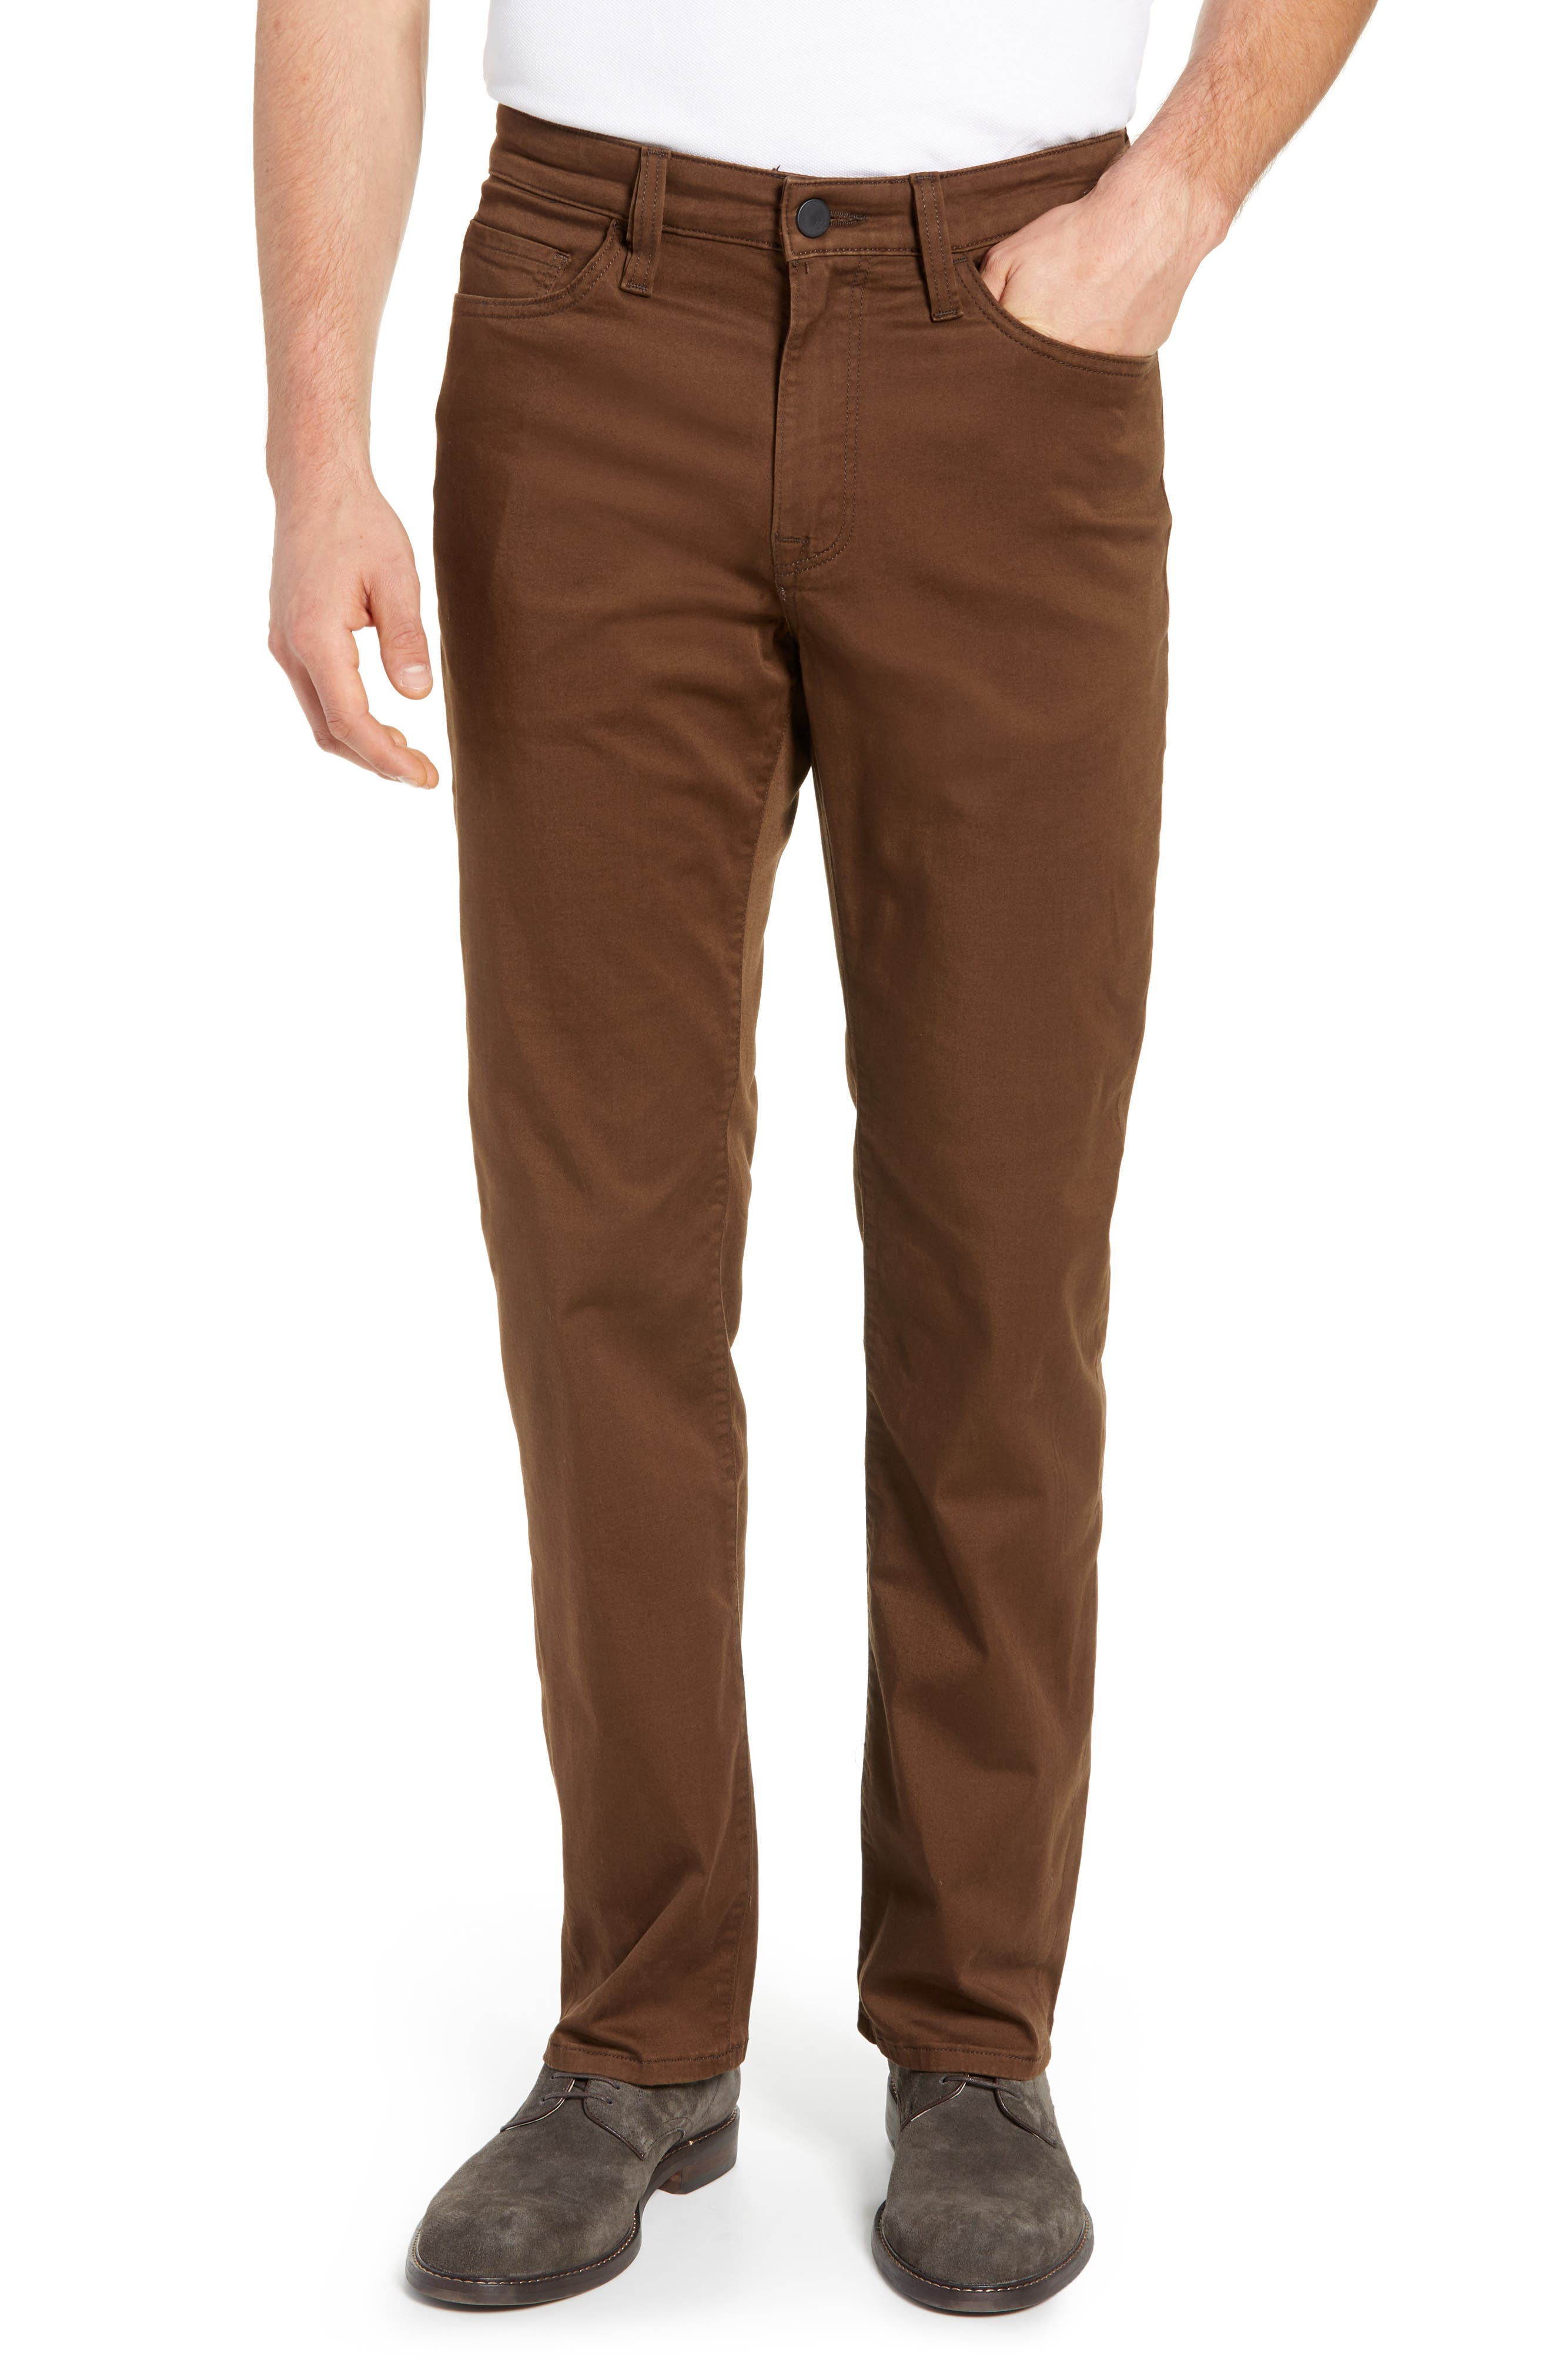 Charisma Relaxed Fit Twill Pants,                             Main thumbnail 1, color,                             CAF TWILL